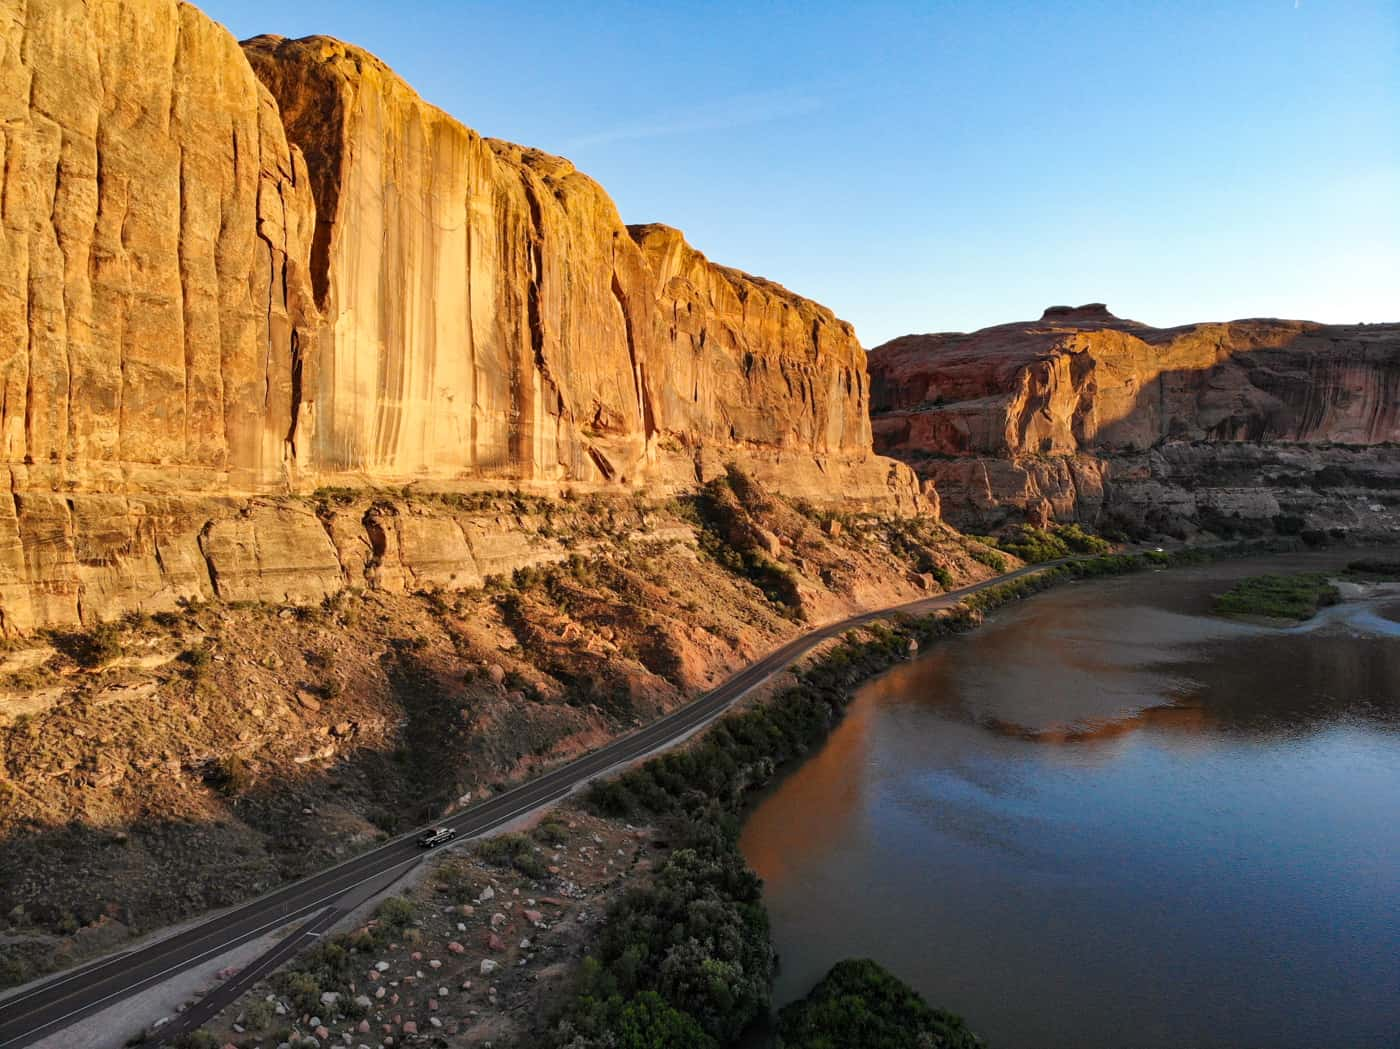 Aerial view of the Colorado River along scenic byway 128 in Moab.